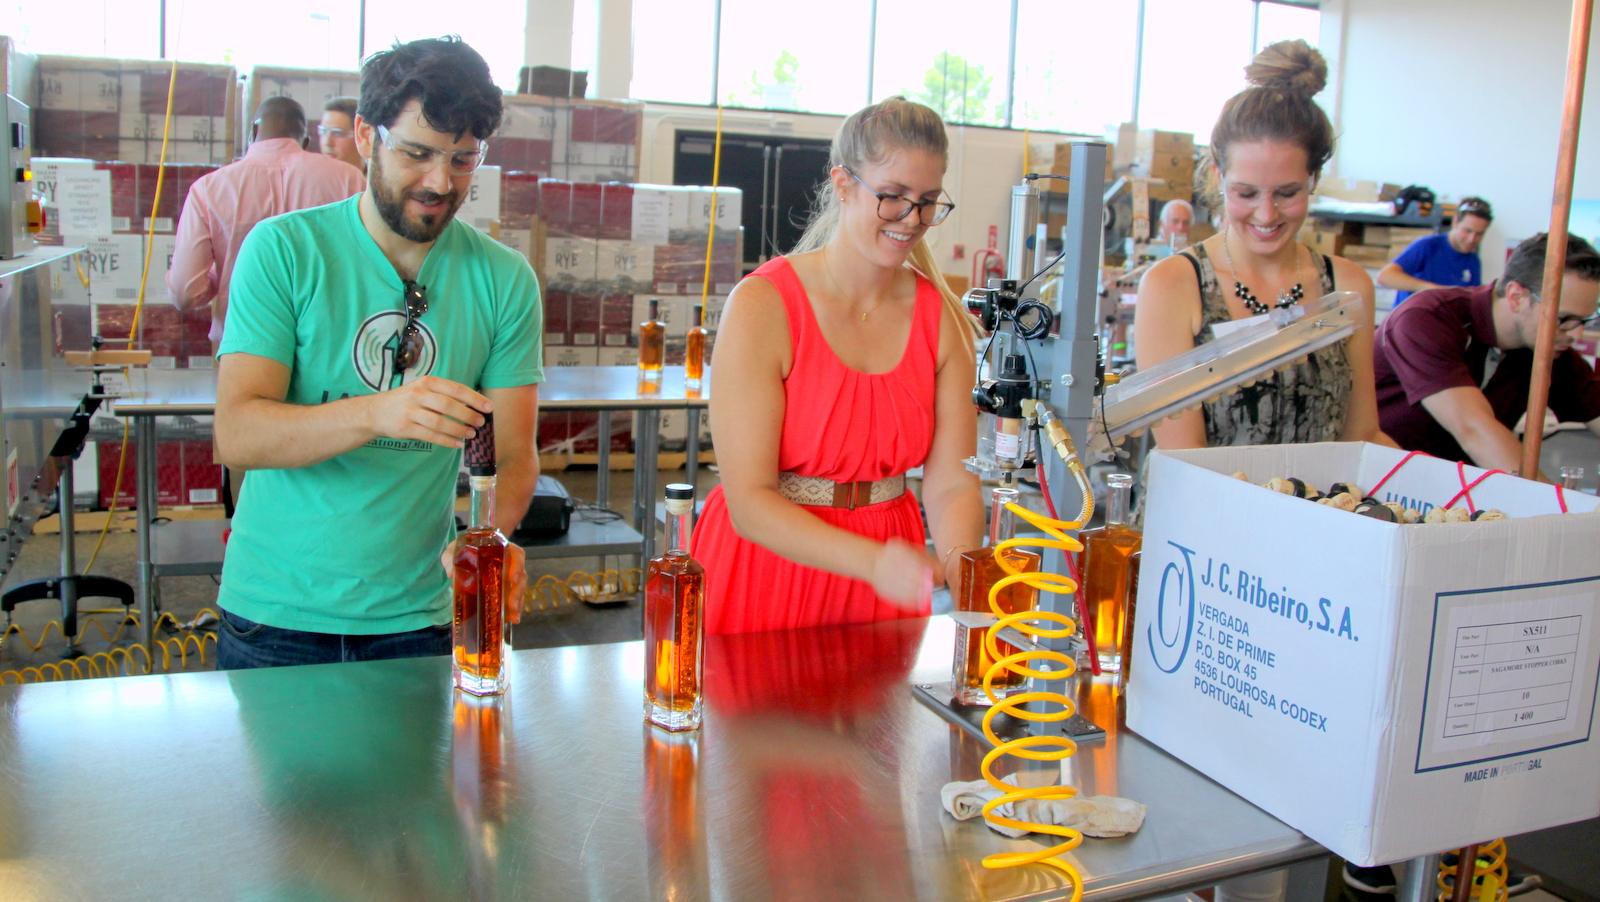 Volunteers demonstrated the labeling process for Sagamore Spirit rye. The whiskey distillery is one of many businesses that are part of the Port Covington project. (Fern Shen)